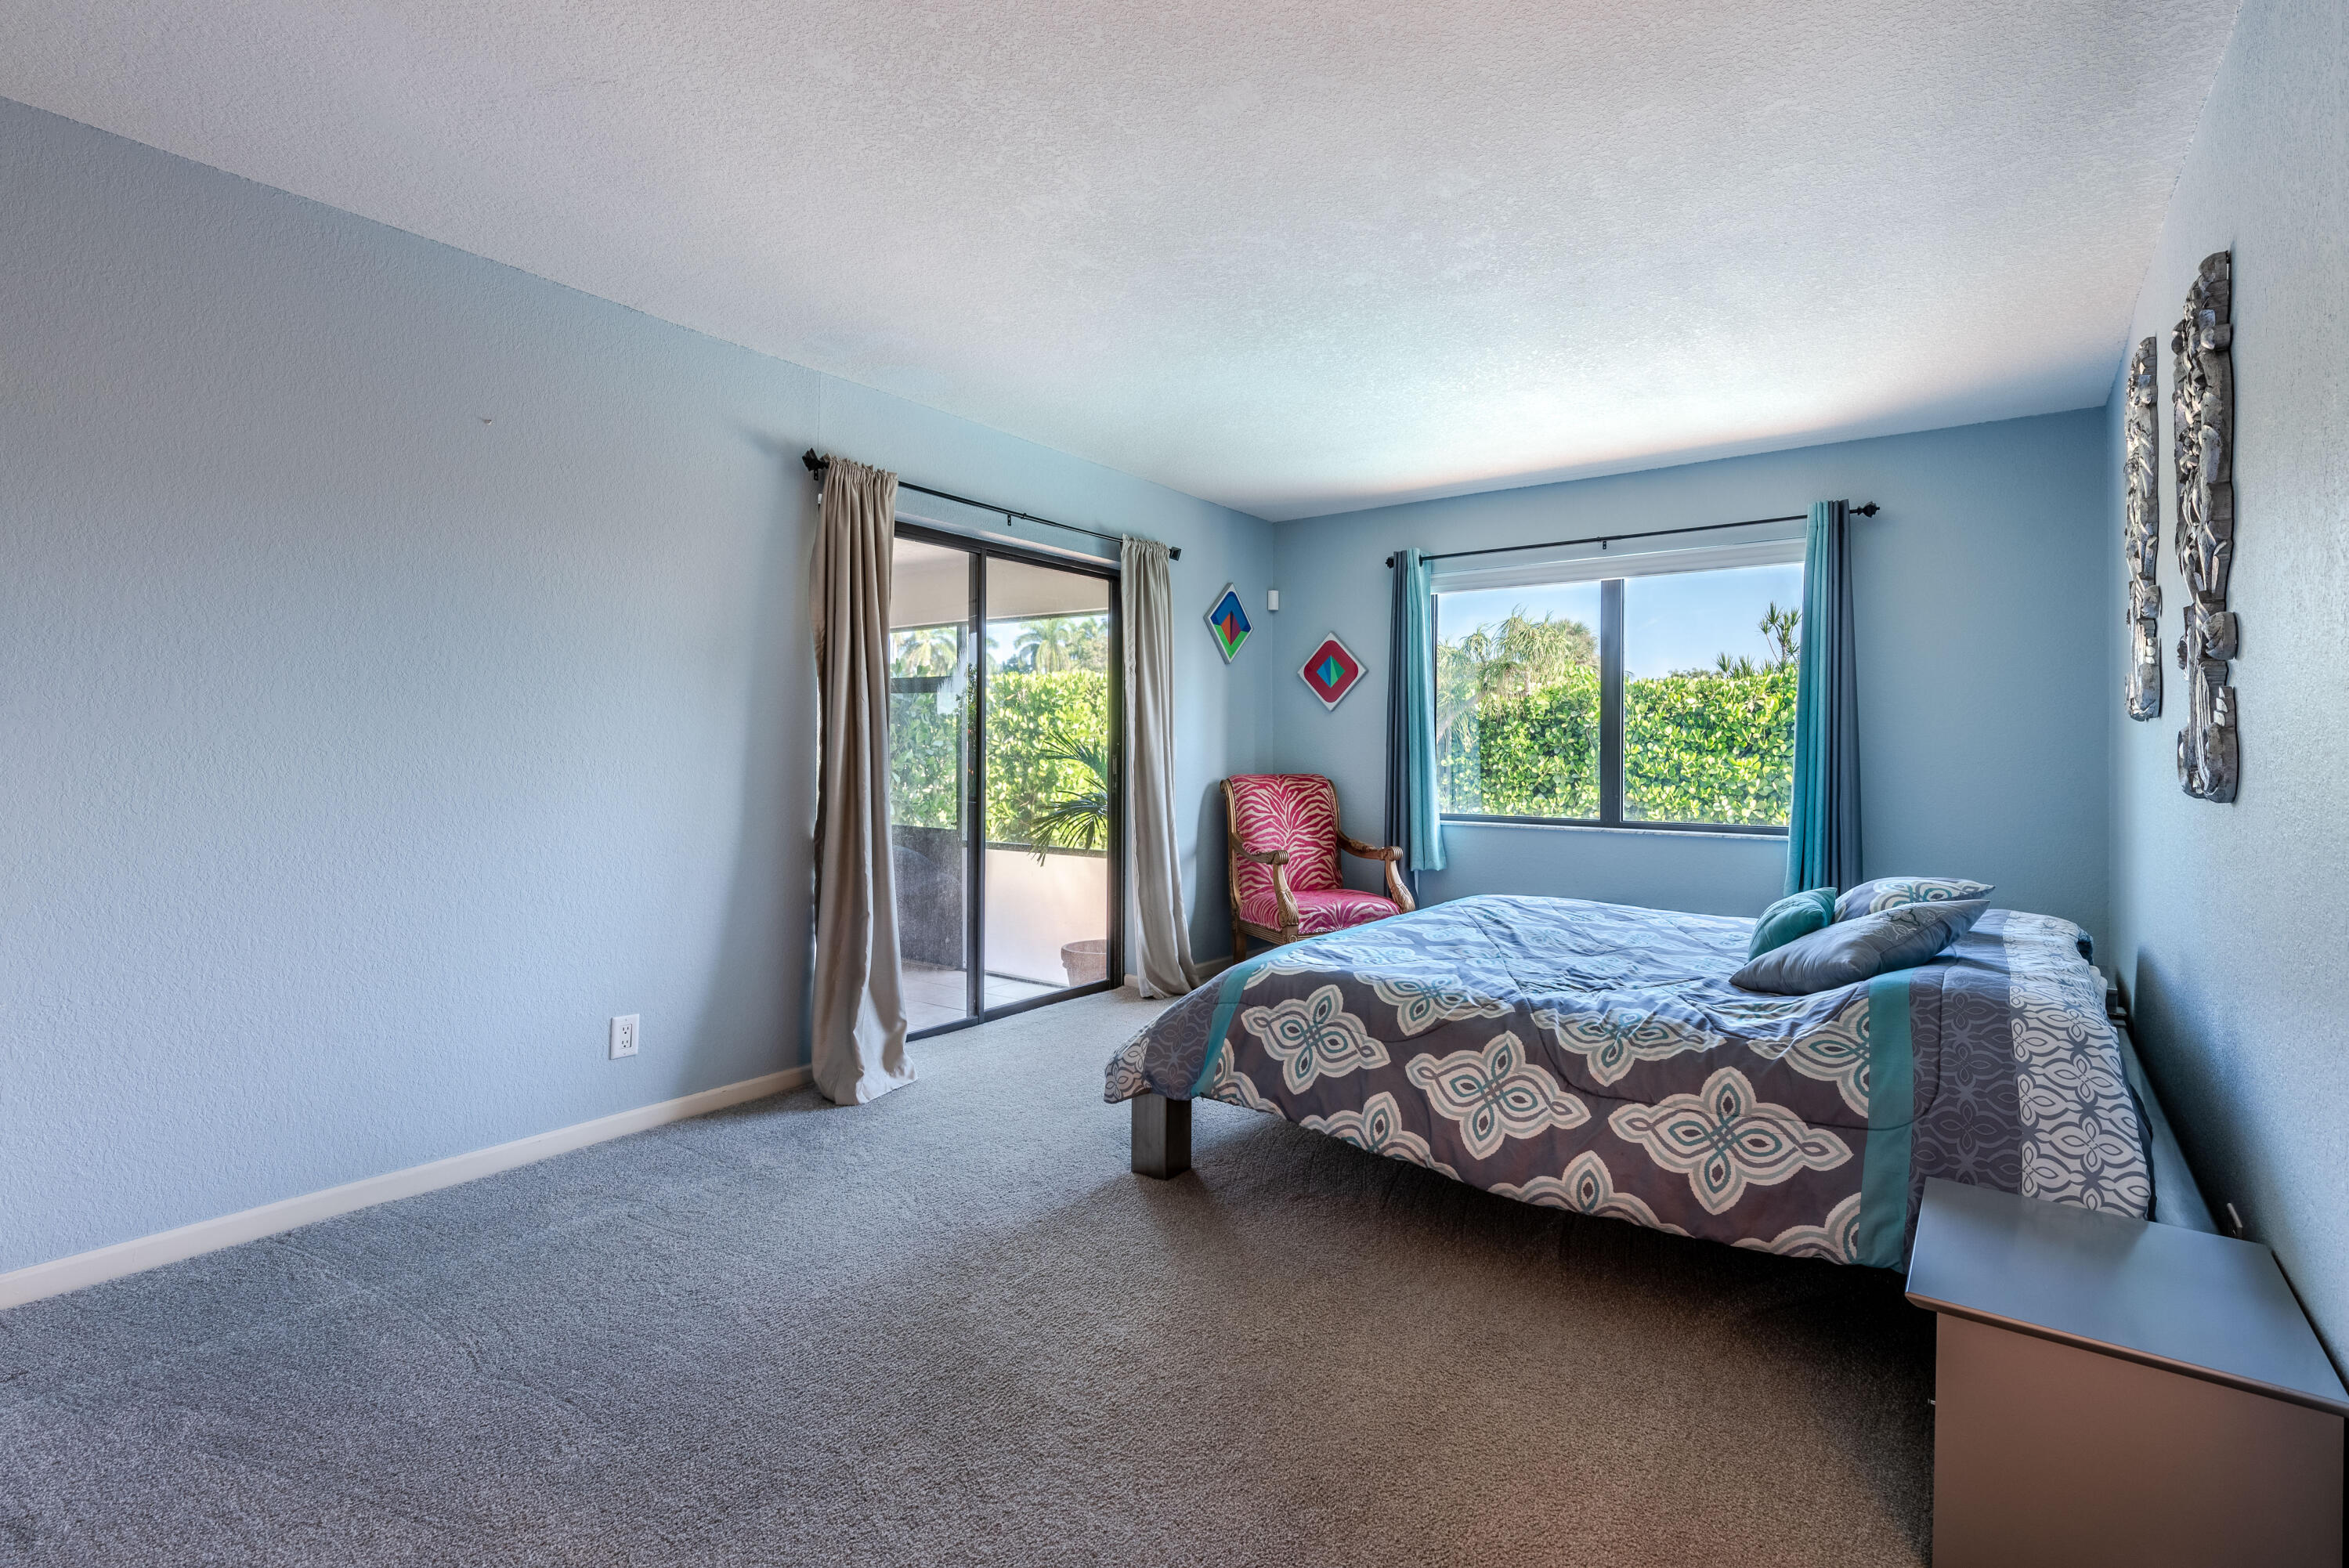 3519 Lakeview Dr (13 of 49)